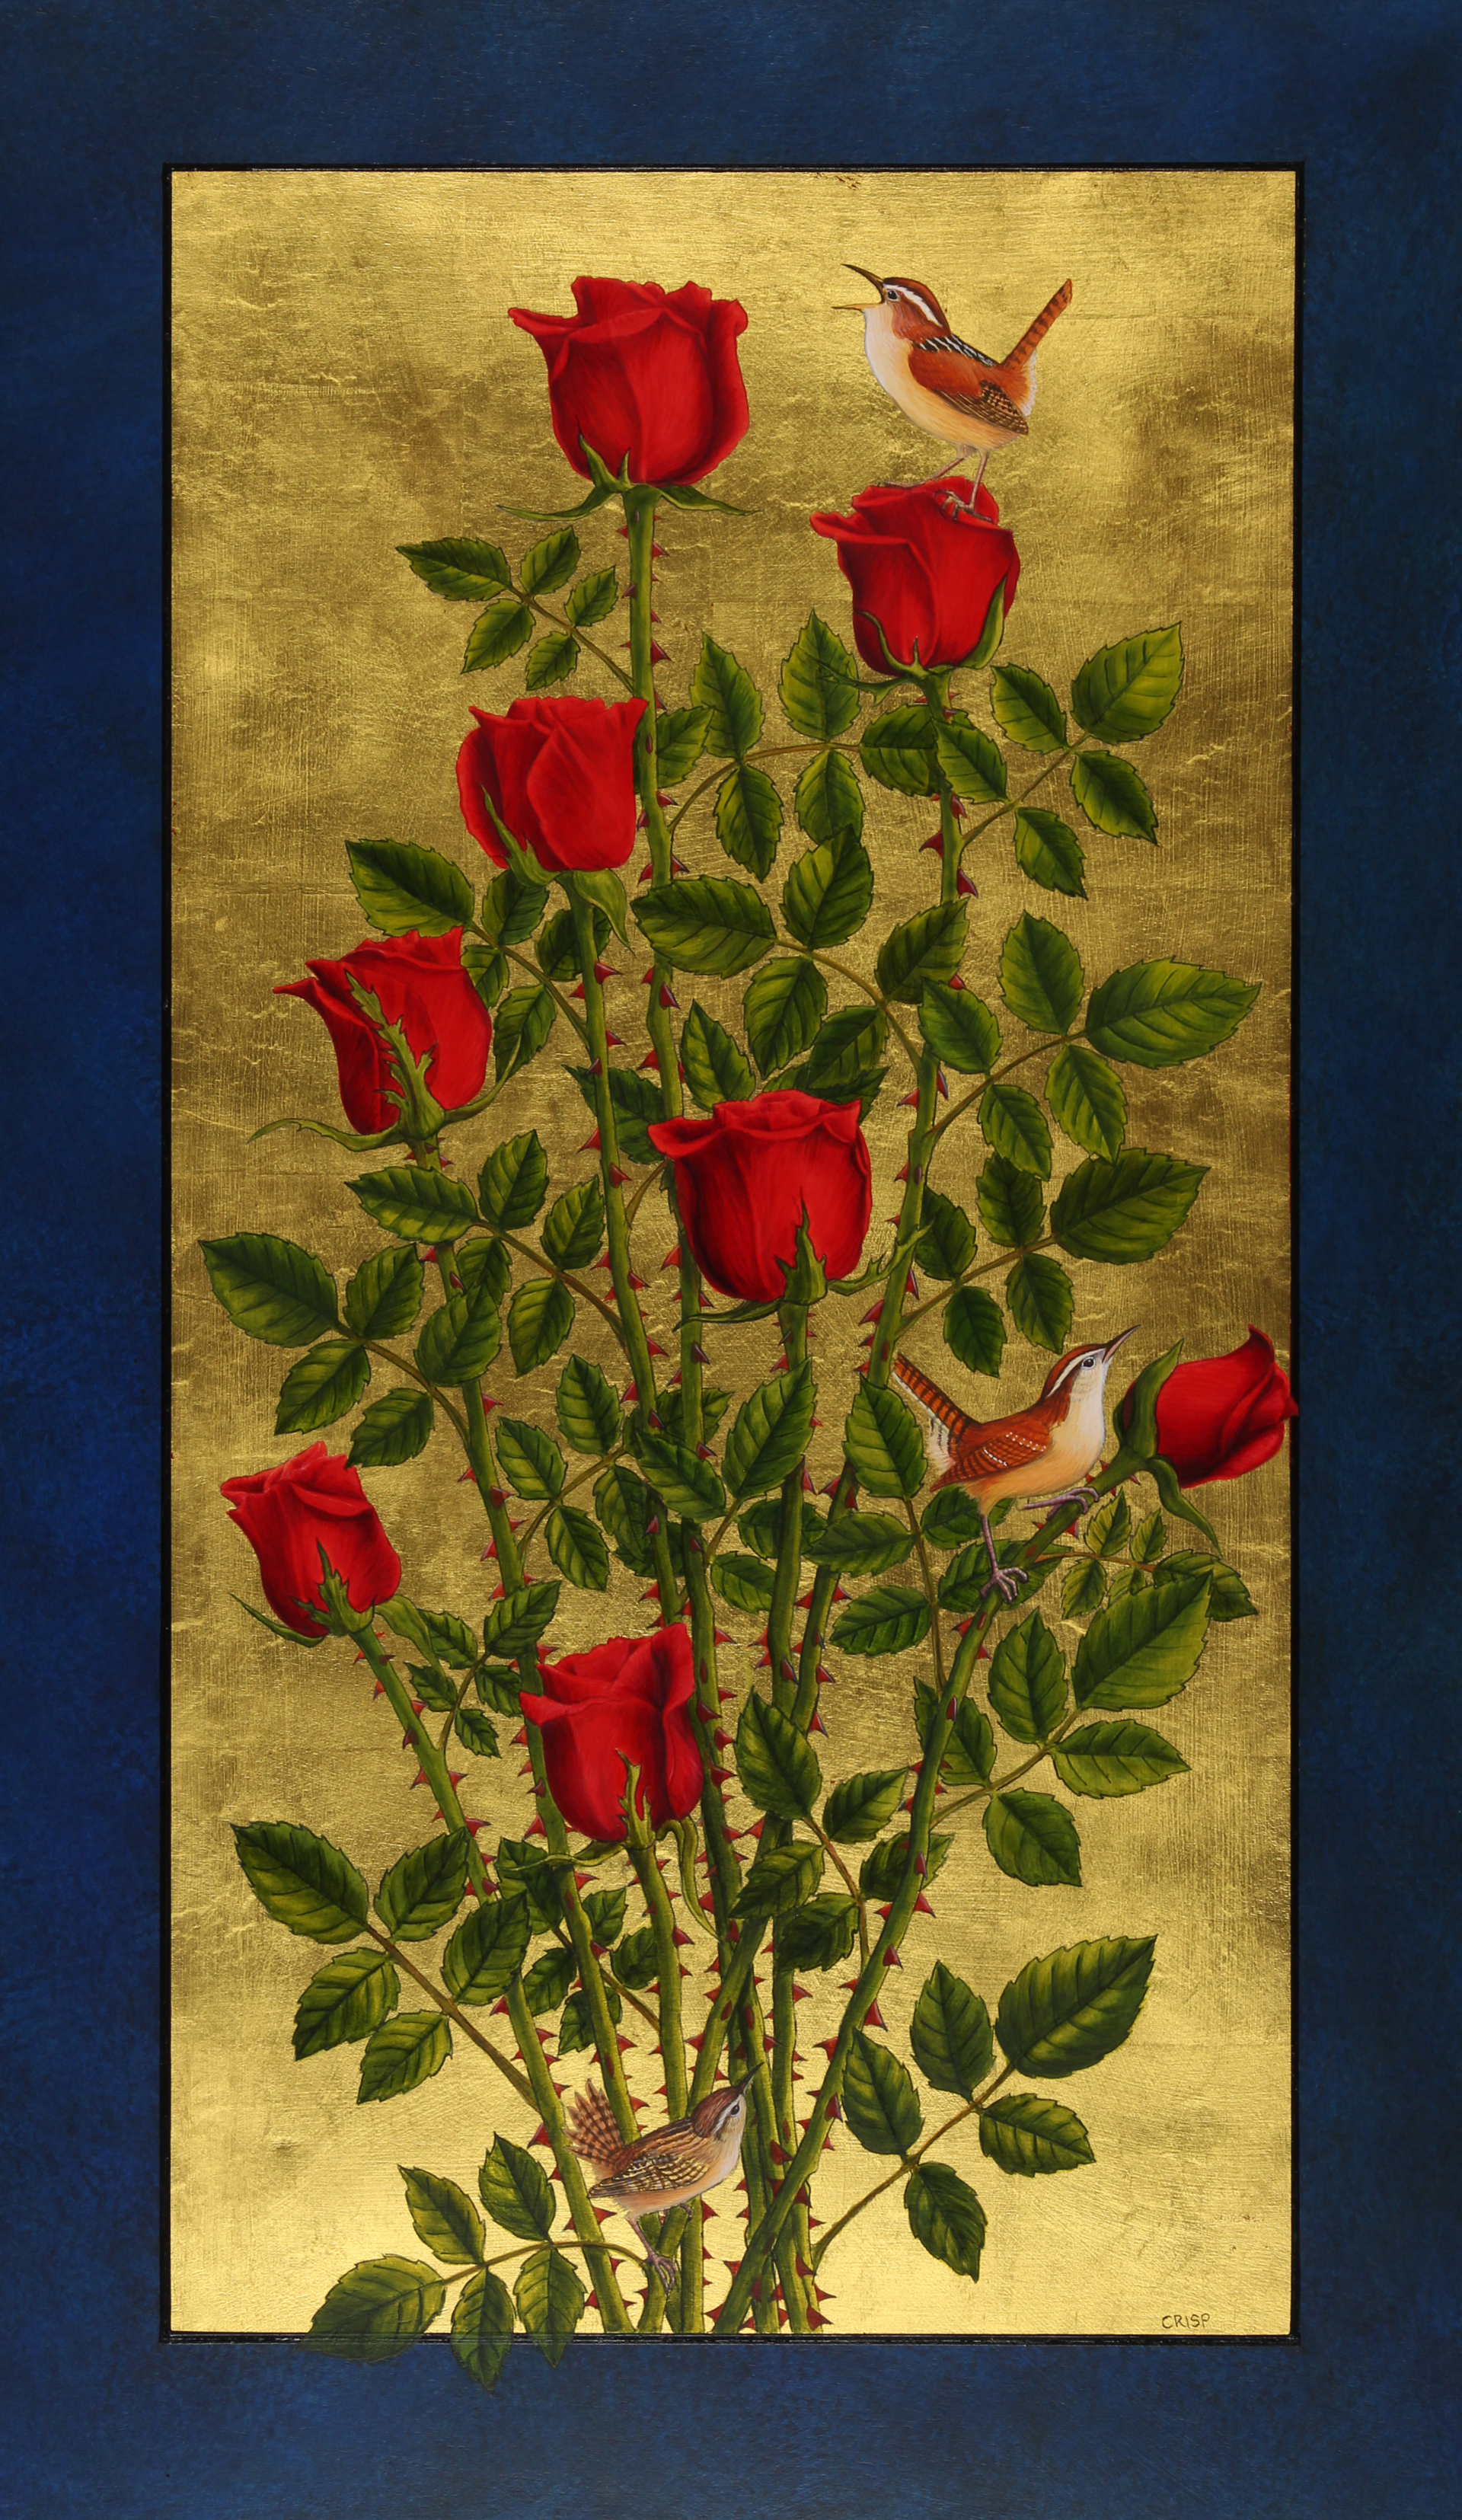 Wrens and Red Roses by Margie Crisp